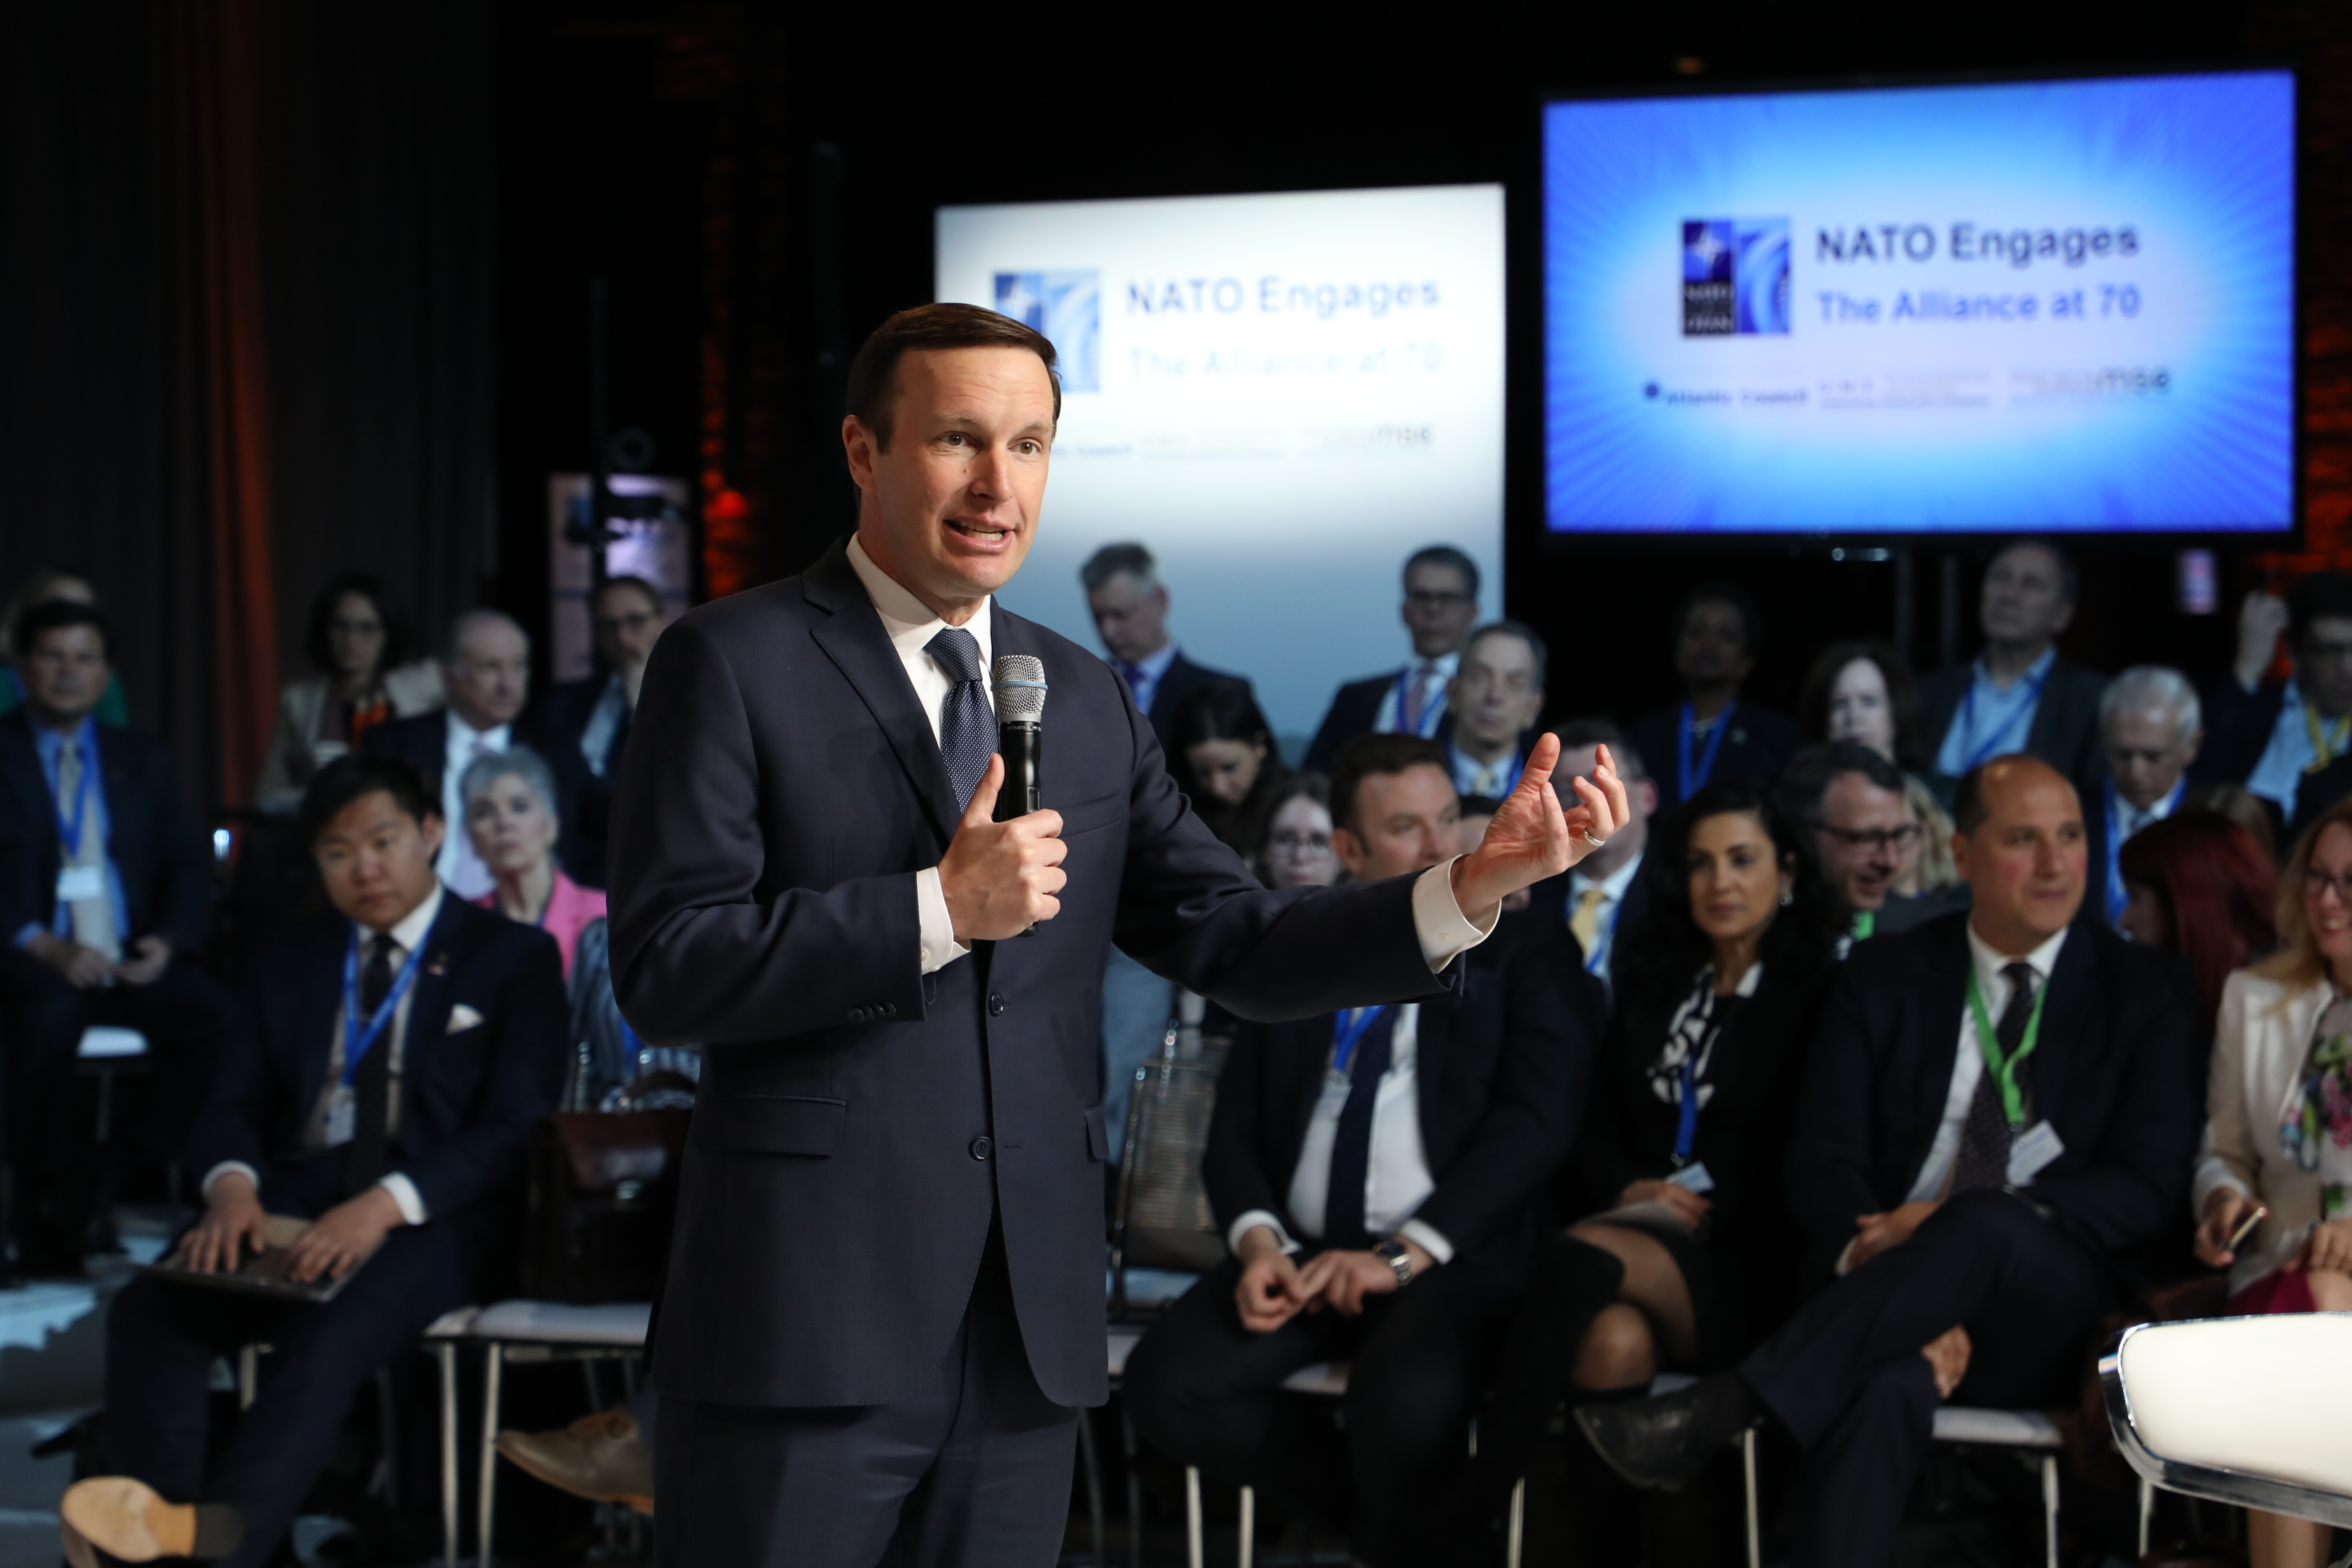 US Sen. Chris Murphy warns allies to be vigilant about the 'quiet things' Russia is doing